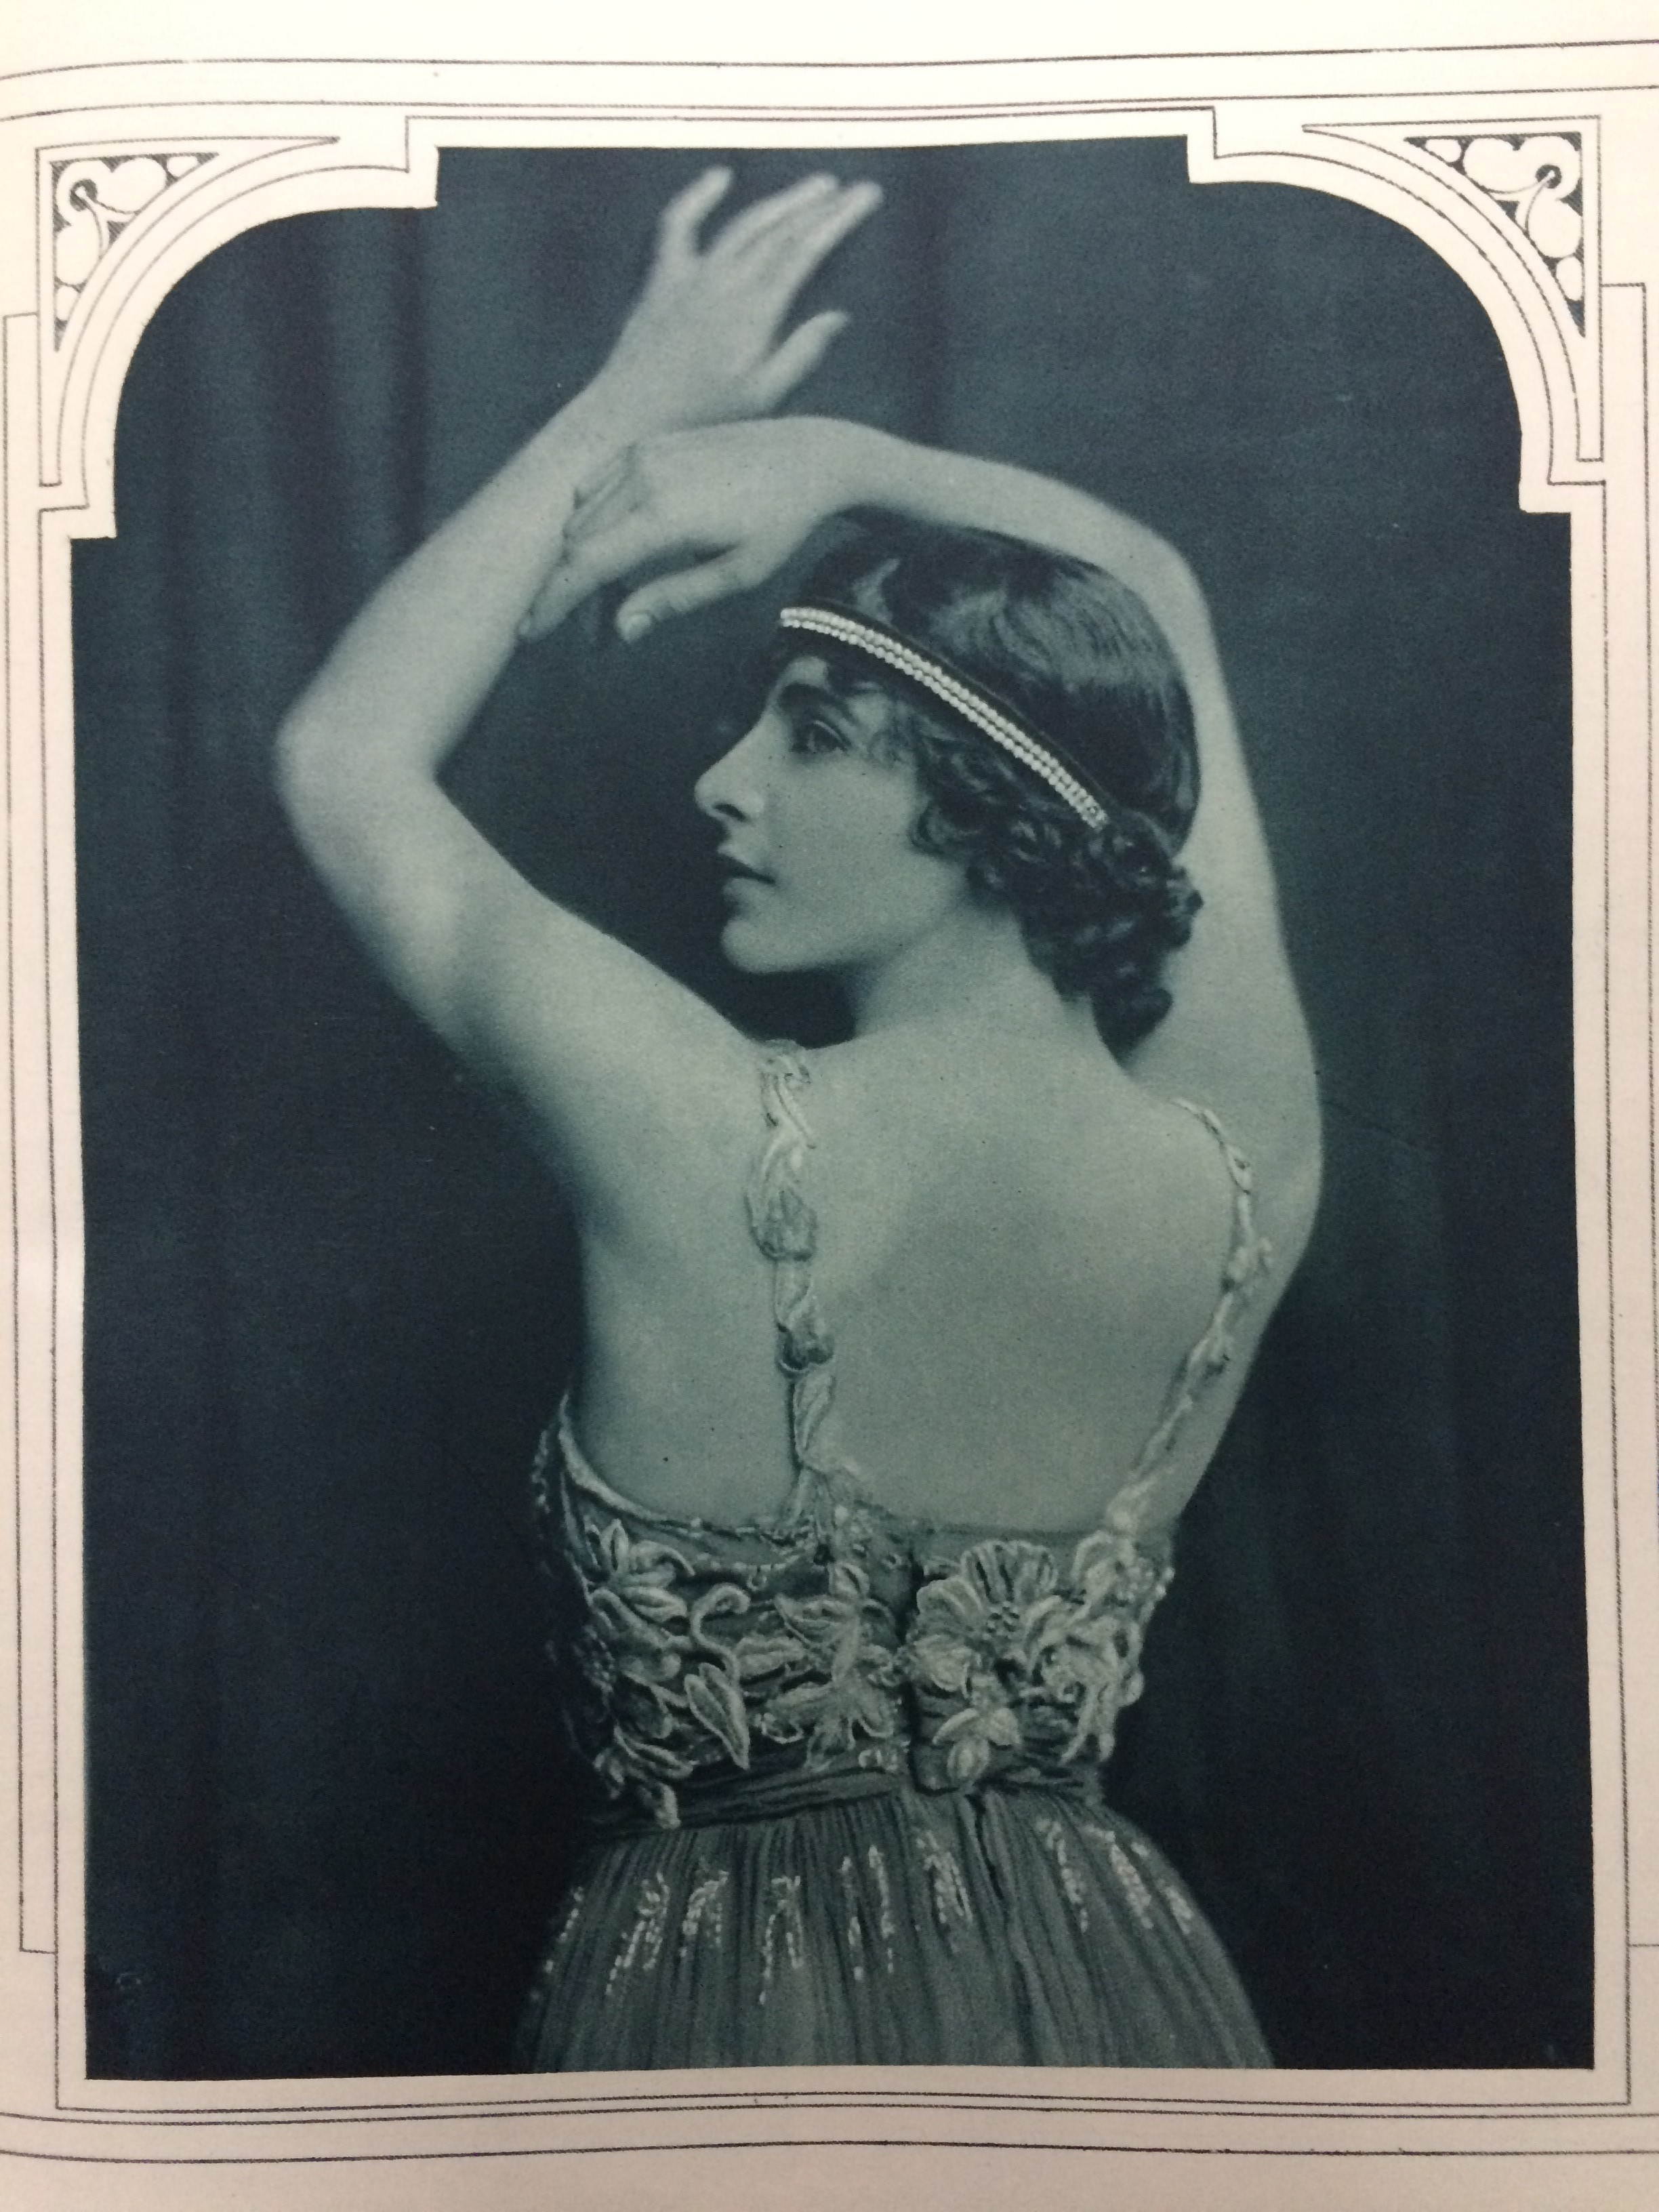 Ivy in her character from 'Topsy Turvey' in the society magazine 'The Sketch', 5 September 1917, photographed by Malcolm Arbuthnot. Ivy's dance was described as 'weird, passionate and highly dramatic.'